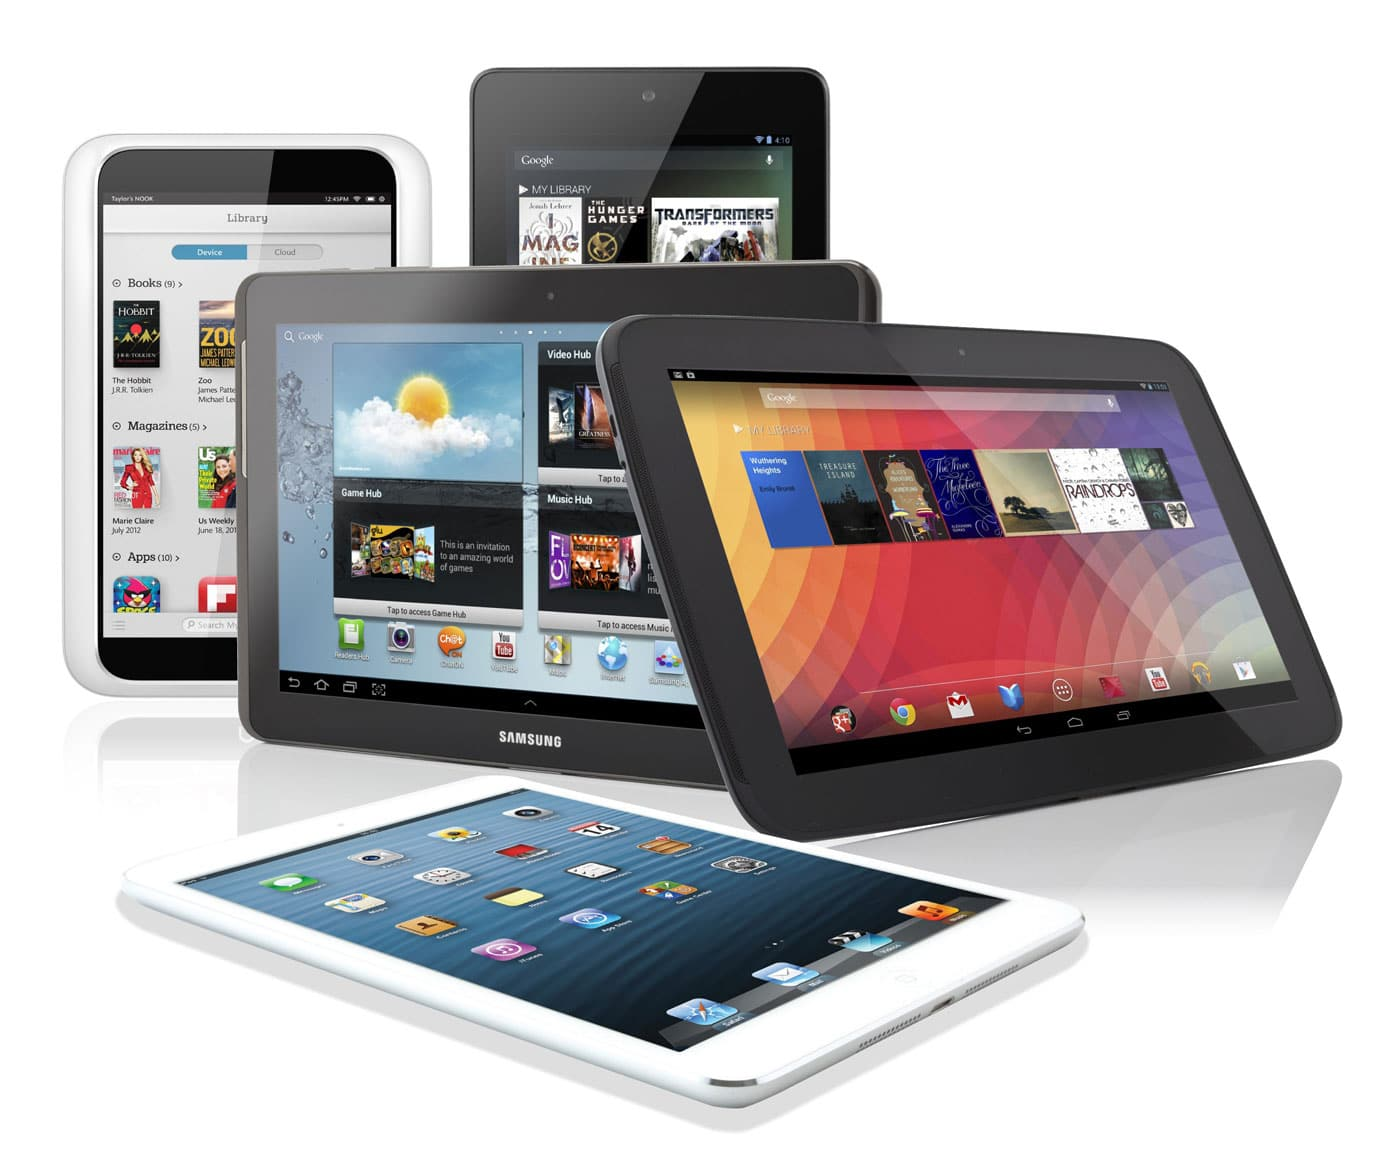 tabletrocket-site-compares-all-tablets